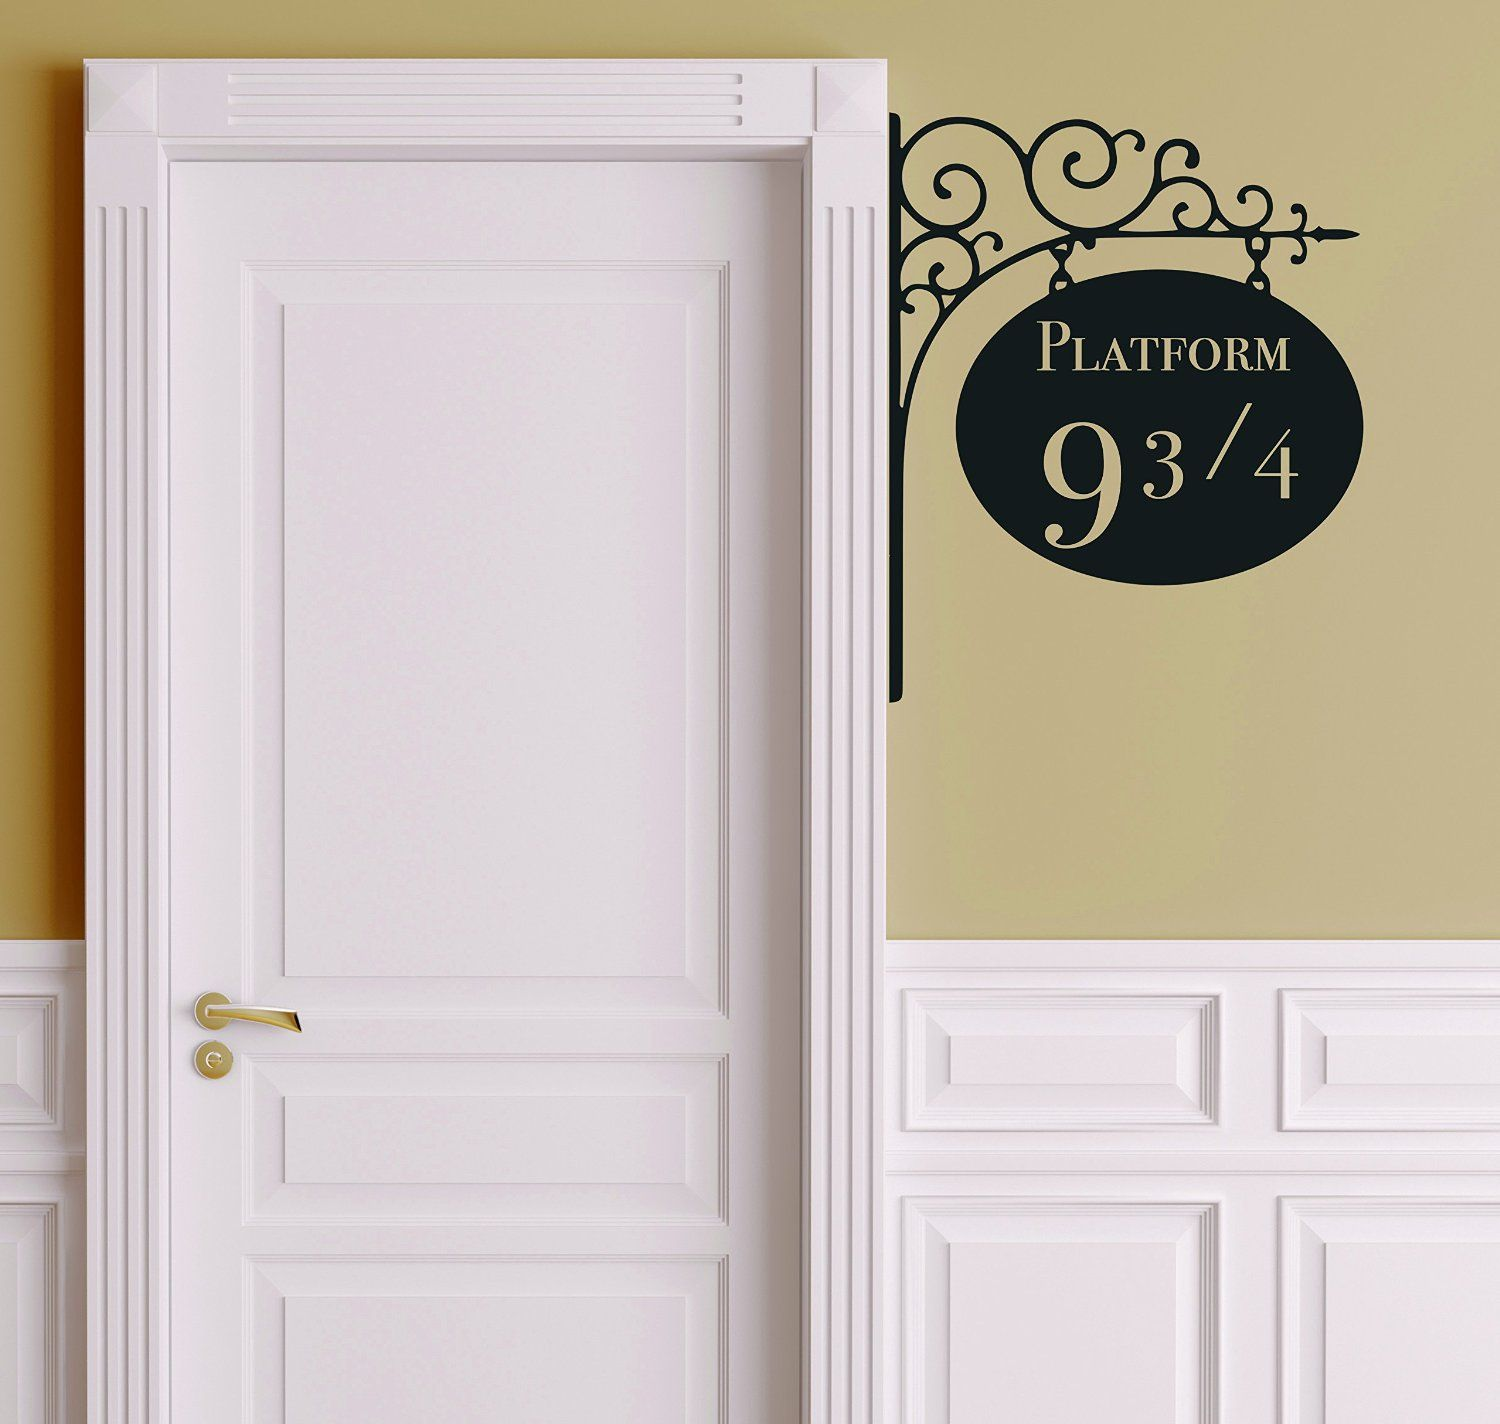 amazon com platform 9 3 4 version 2 harry potter door decor harry potter platform 9 door decal product can be applied to any smooth surface